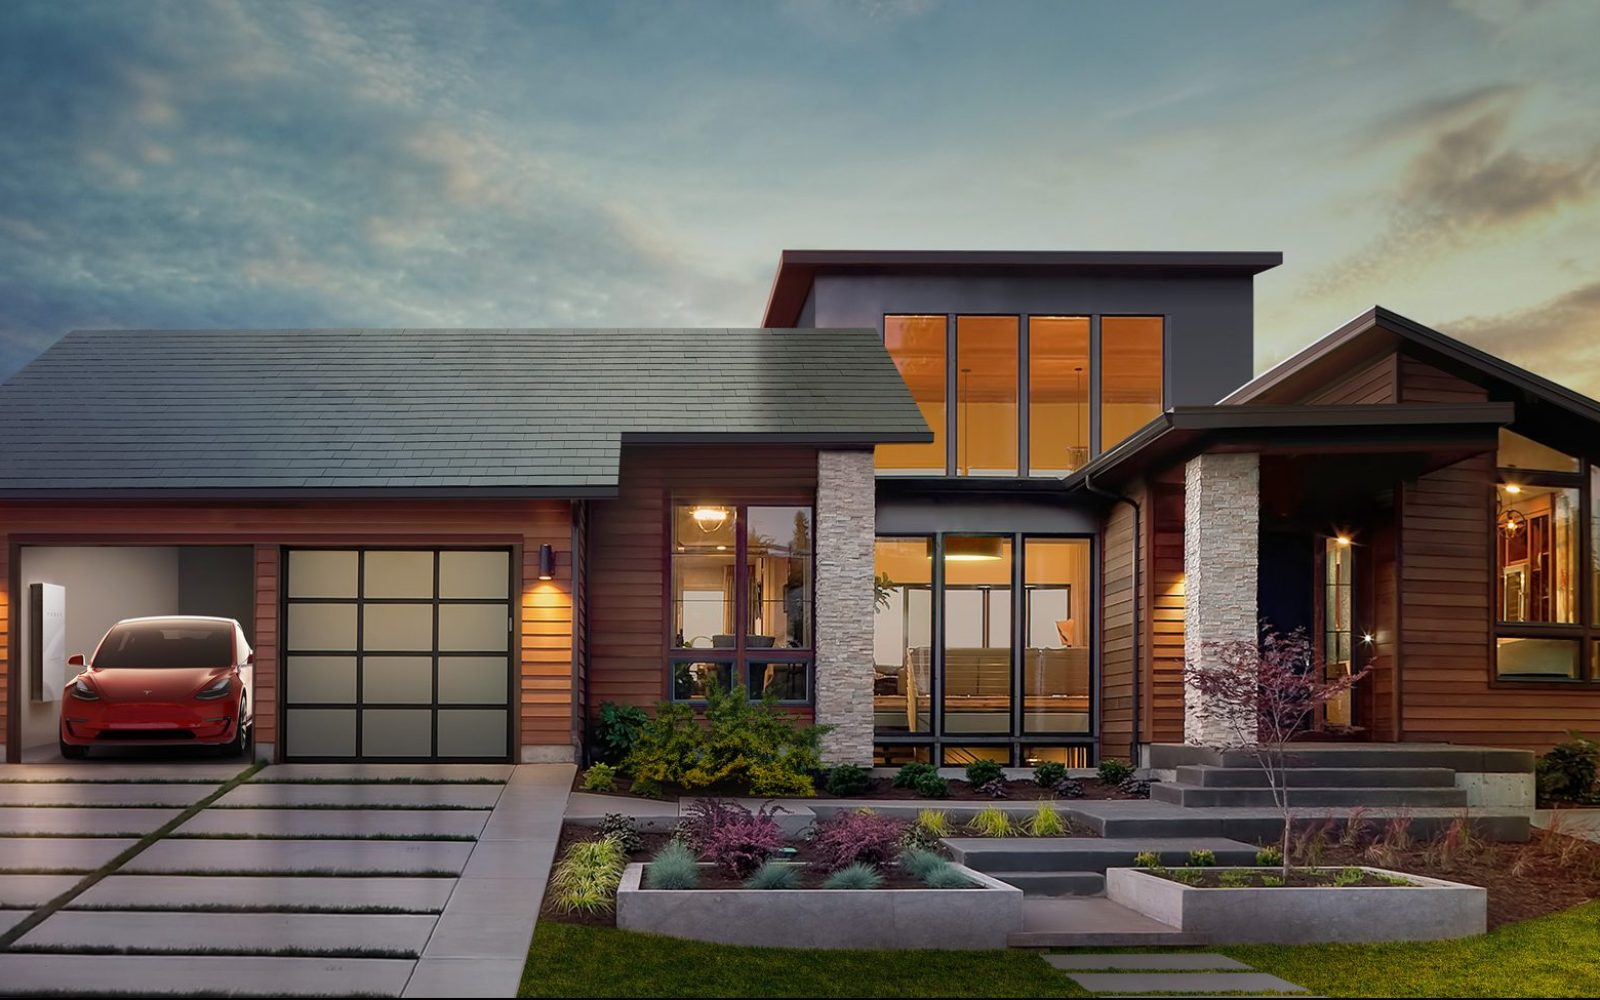 Tesla releases more details about its Solar Roof agreement with Panasonic at 'Gigafactory 2'